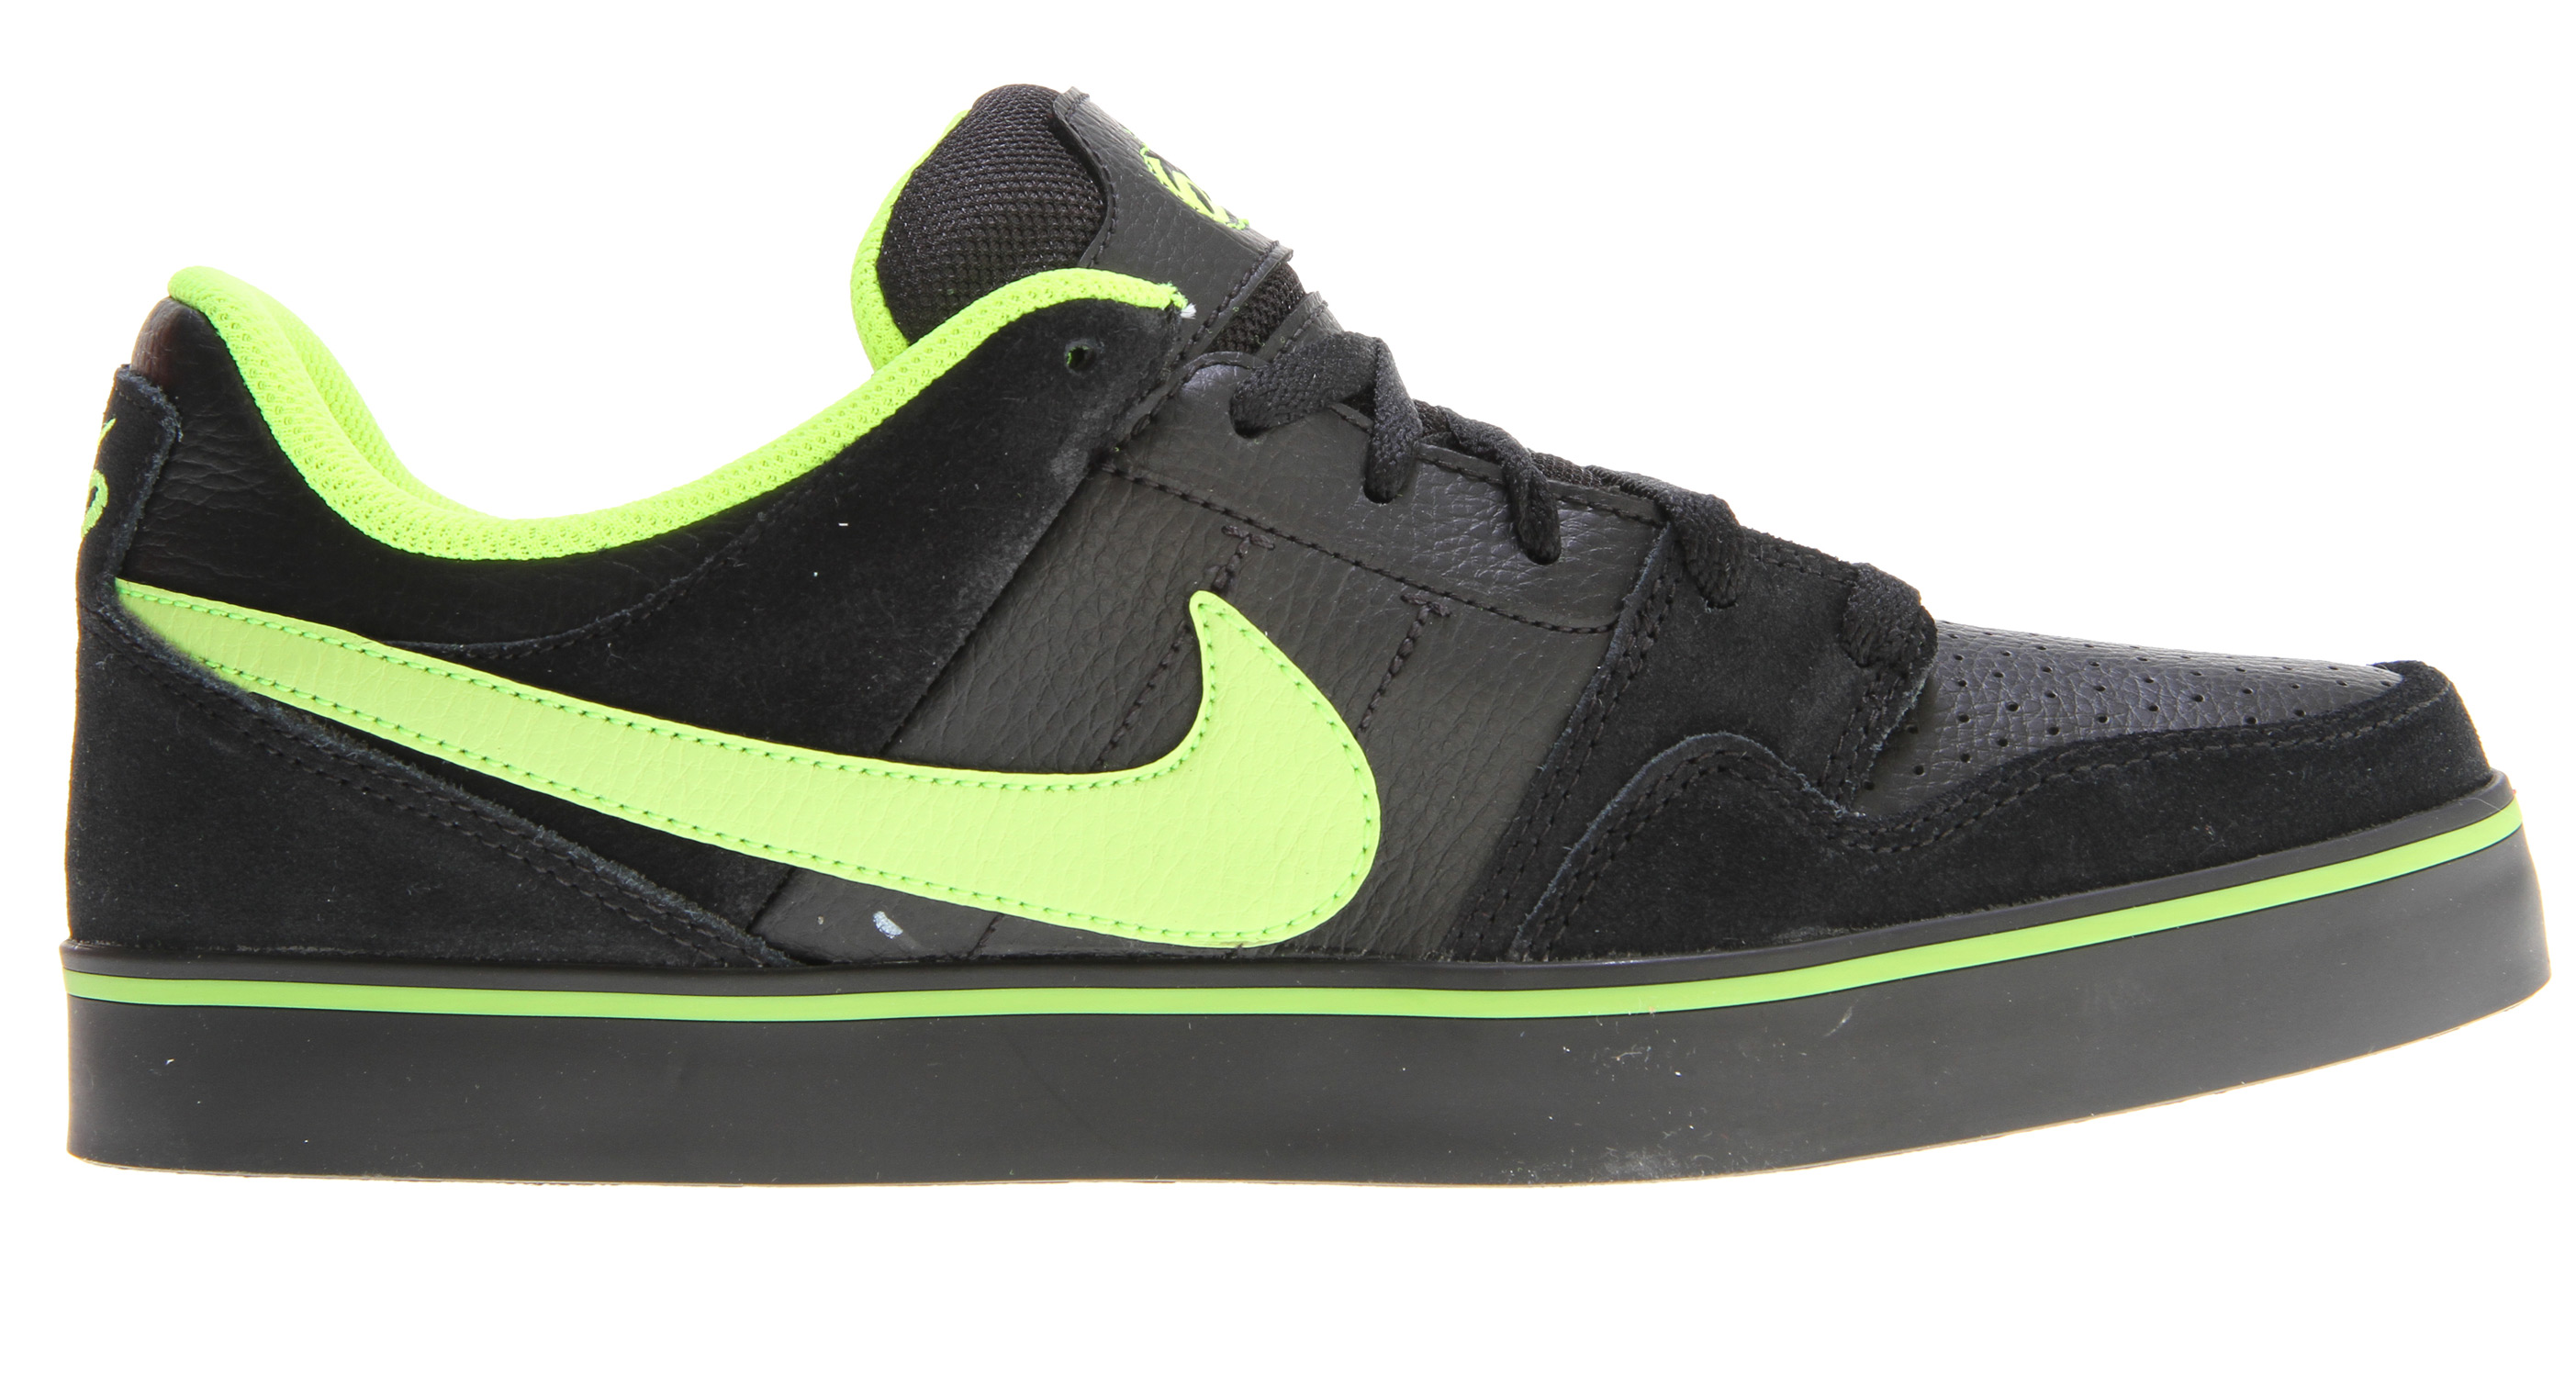 Skateboard Key Features of the Nike Mogan 2 SE Skate Shoes: UPPER: Suede, leather and Nubuck materials. Increased layers for durability. MIDSOLE: Phylon midsole with encapsulated Air-Sole unit for great comfort and cushioning. OUTSOLE: Rubber outsole for durability and grip. - $49.95